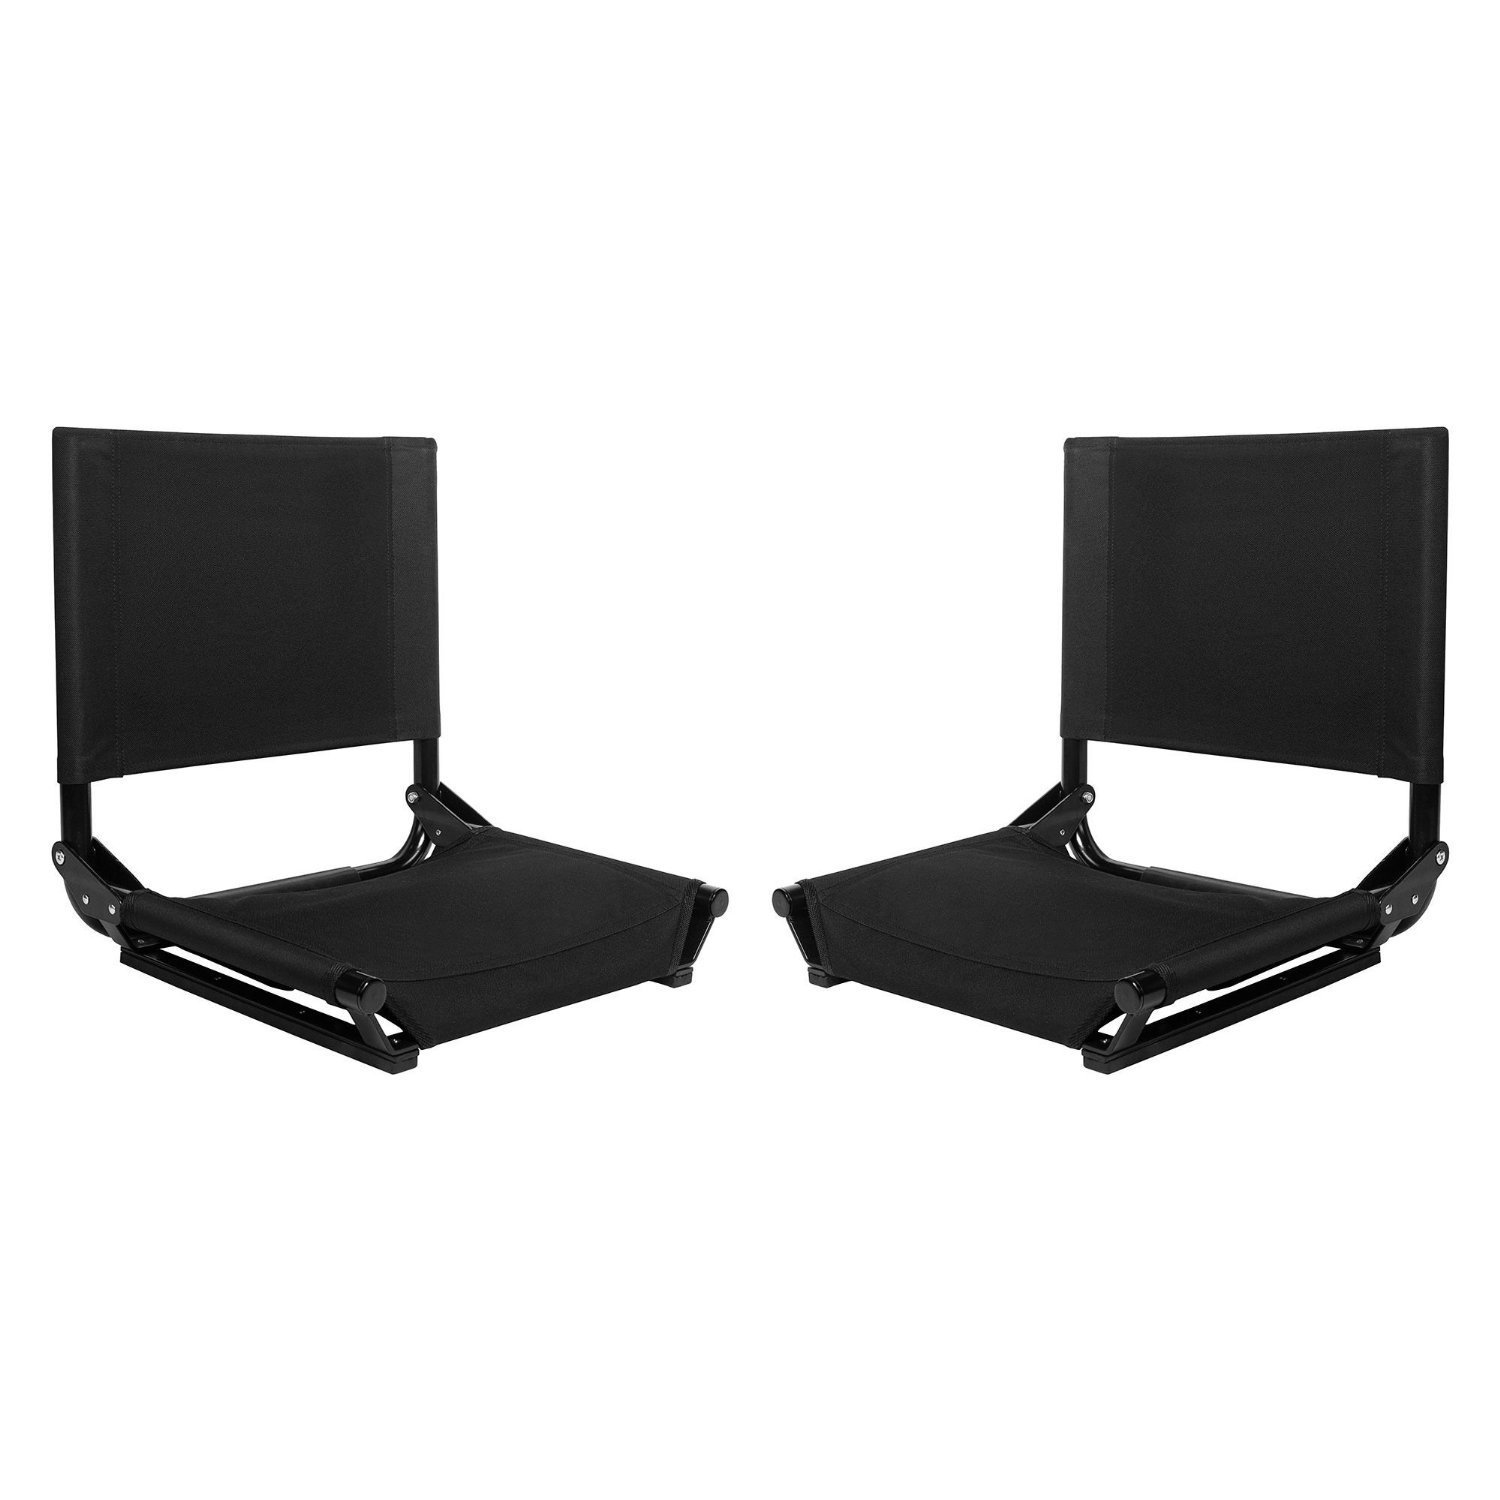 Black Stadium Chairs 2 Pack Bleacher Bench Soft Cushioning Game Seat Outdoor